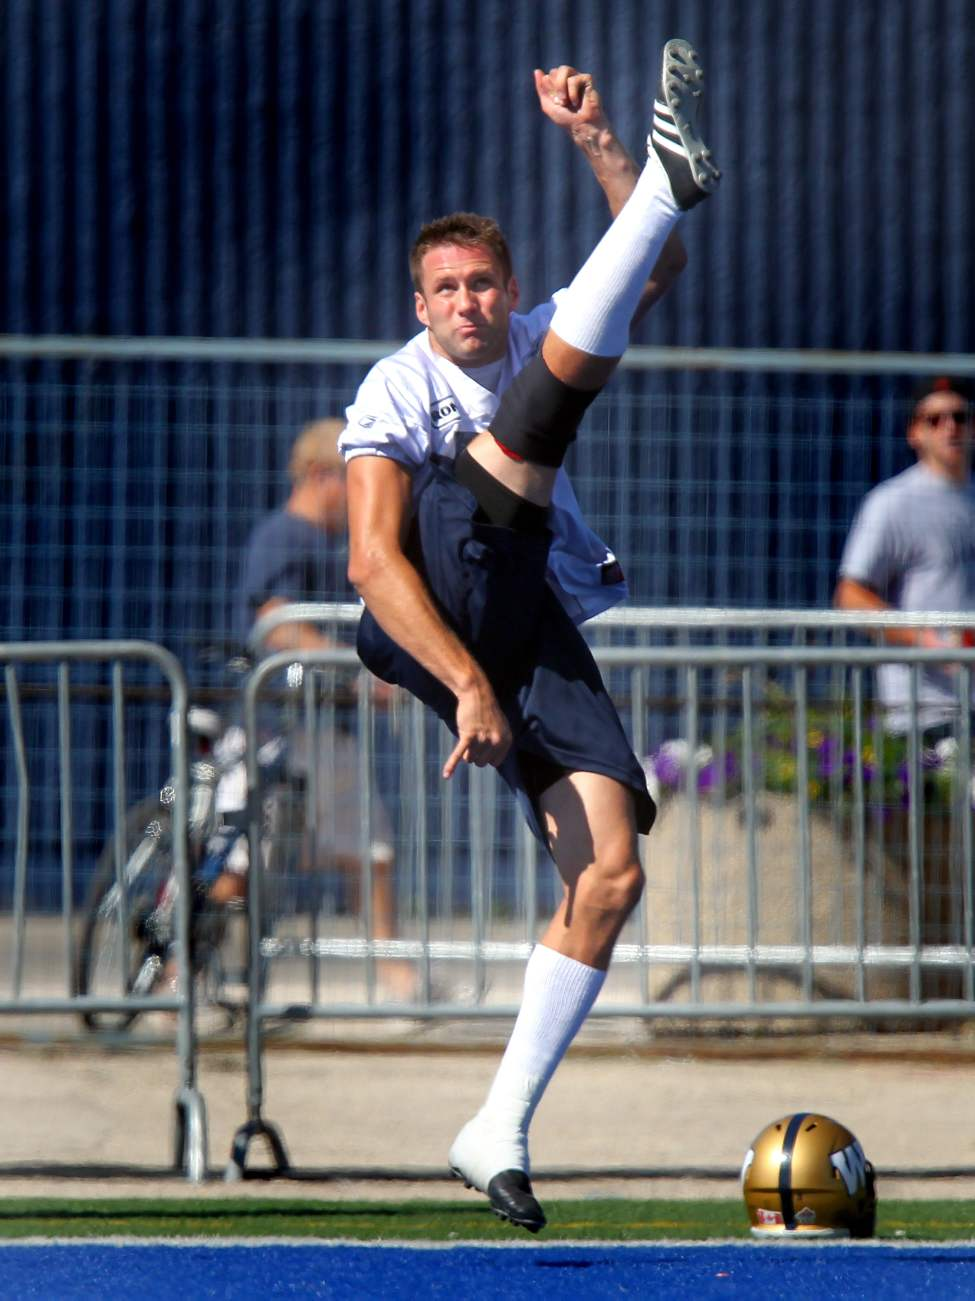 An airborne Mike Renaud shows off his punting form at the Bombers' mid-day workout Friday.  August 31, 2012  (Phil Hossack / Winnipeg Free Press)